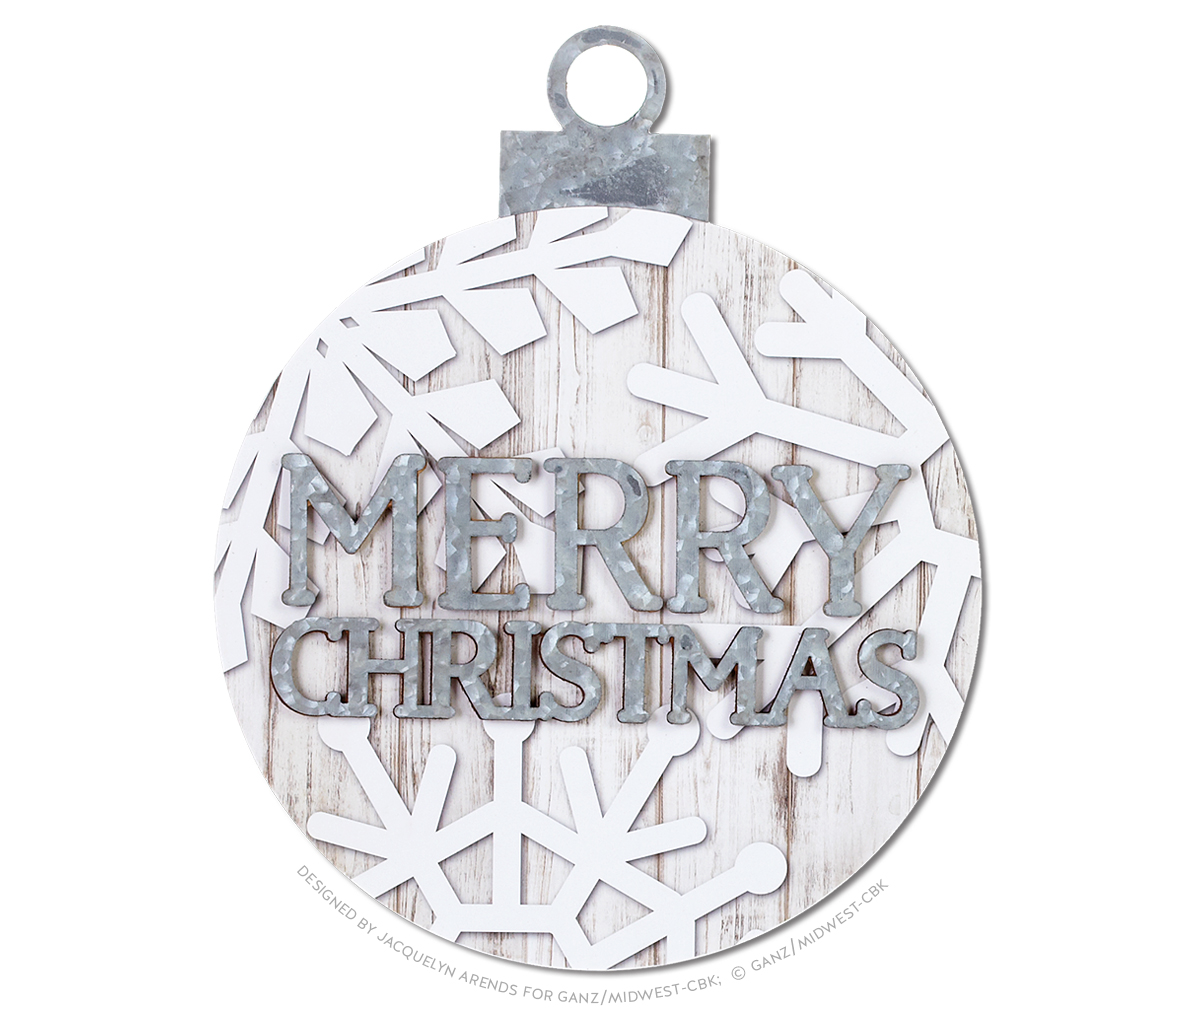 Snowflake Oversized Ball Ornament - Merry Christmas; © Ganz/Midwest-CBK 2019